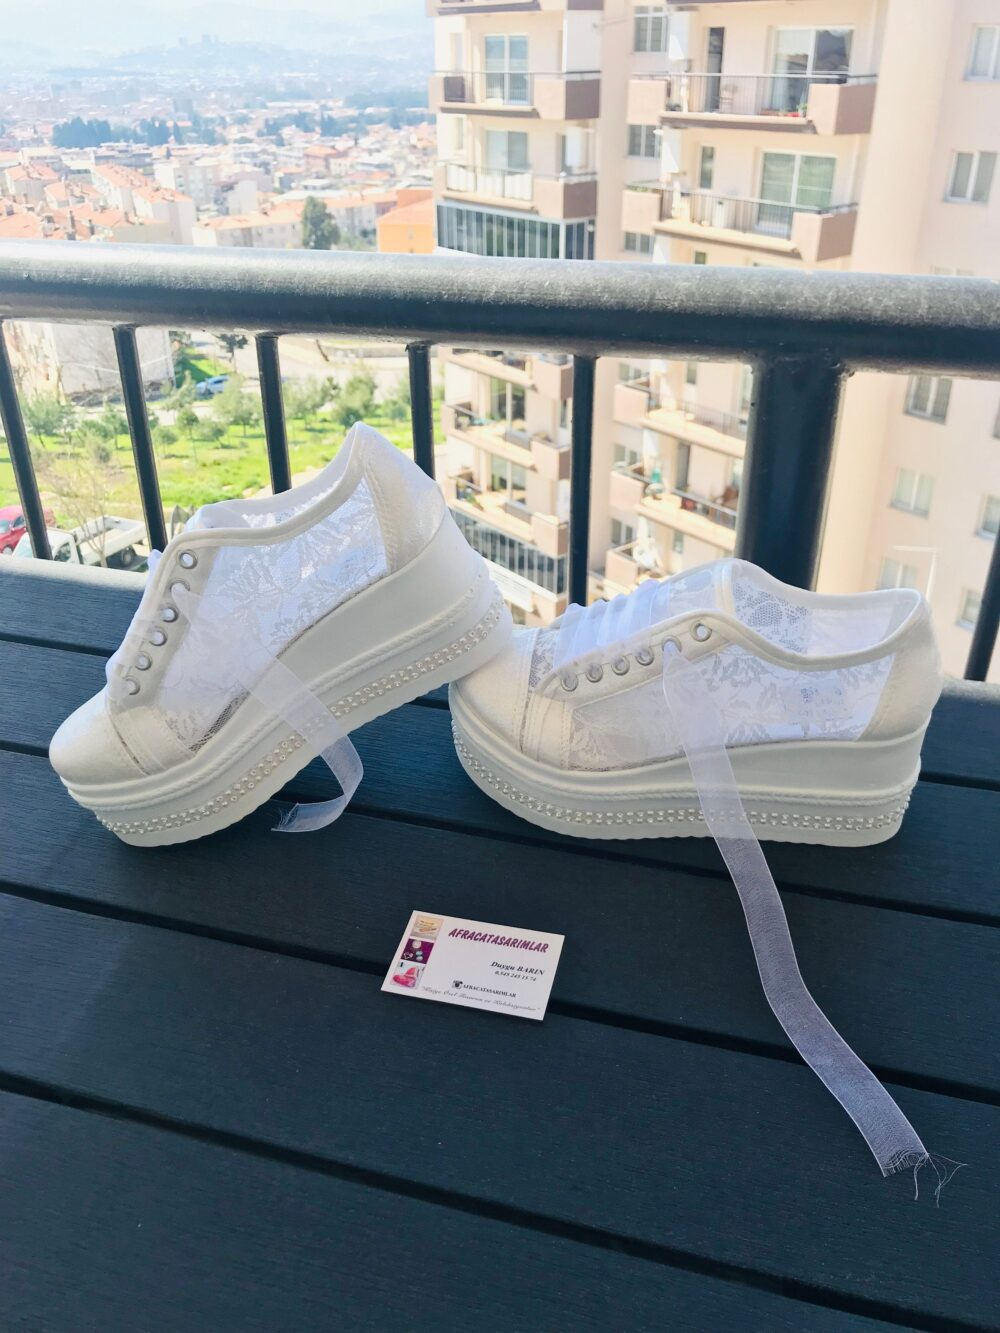 Wedding Shoes, Platform Shoes , Sneakers, Bridal Heels, Women's Brides Lace Sneakers, Lace Heel